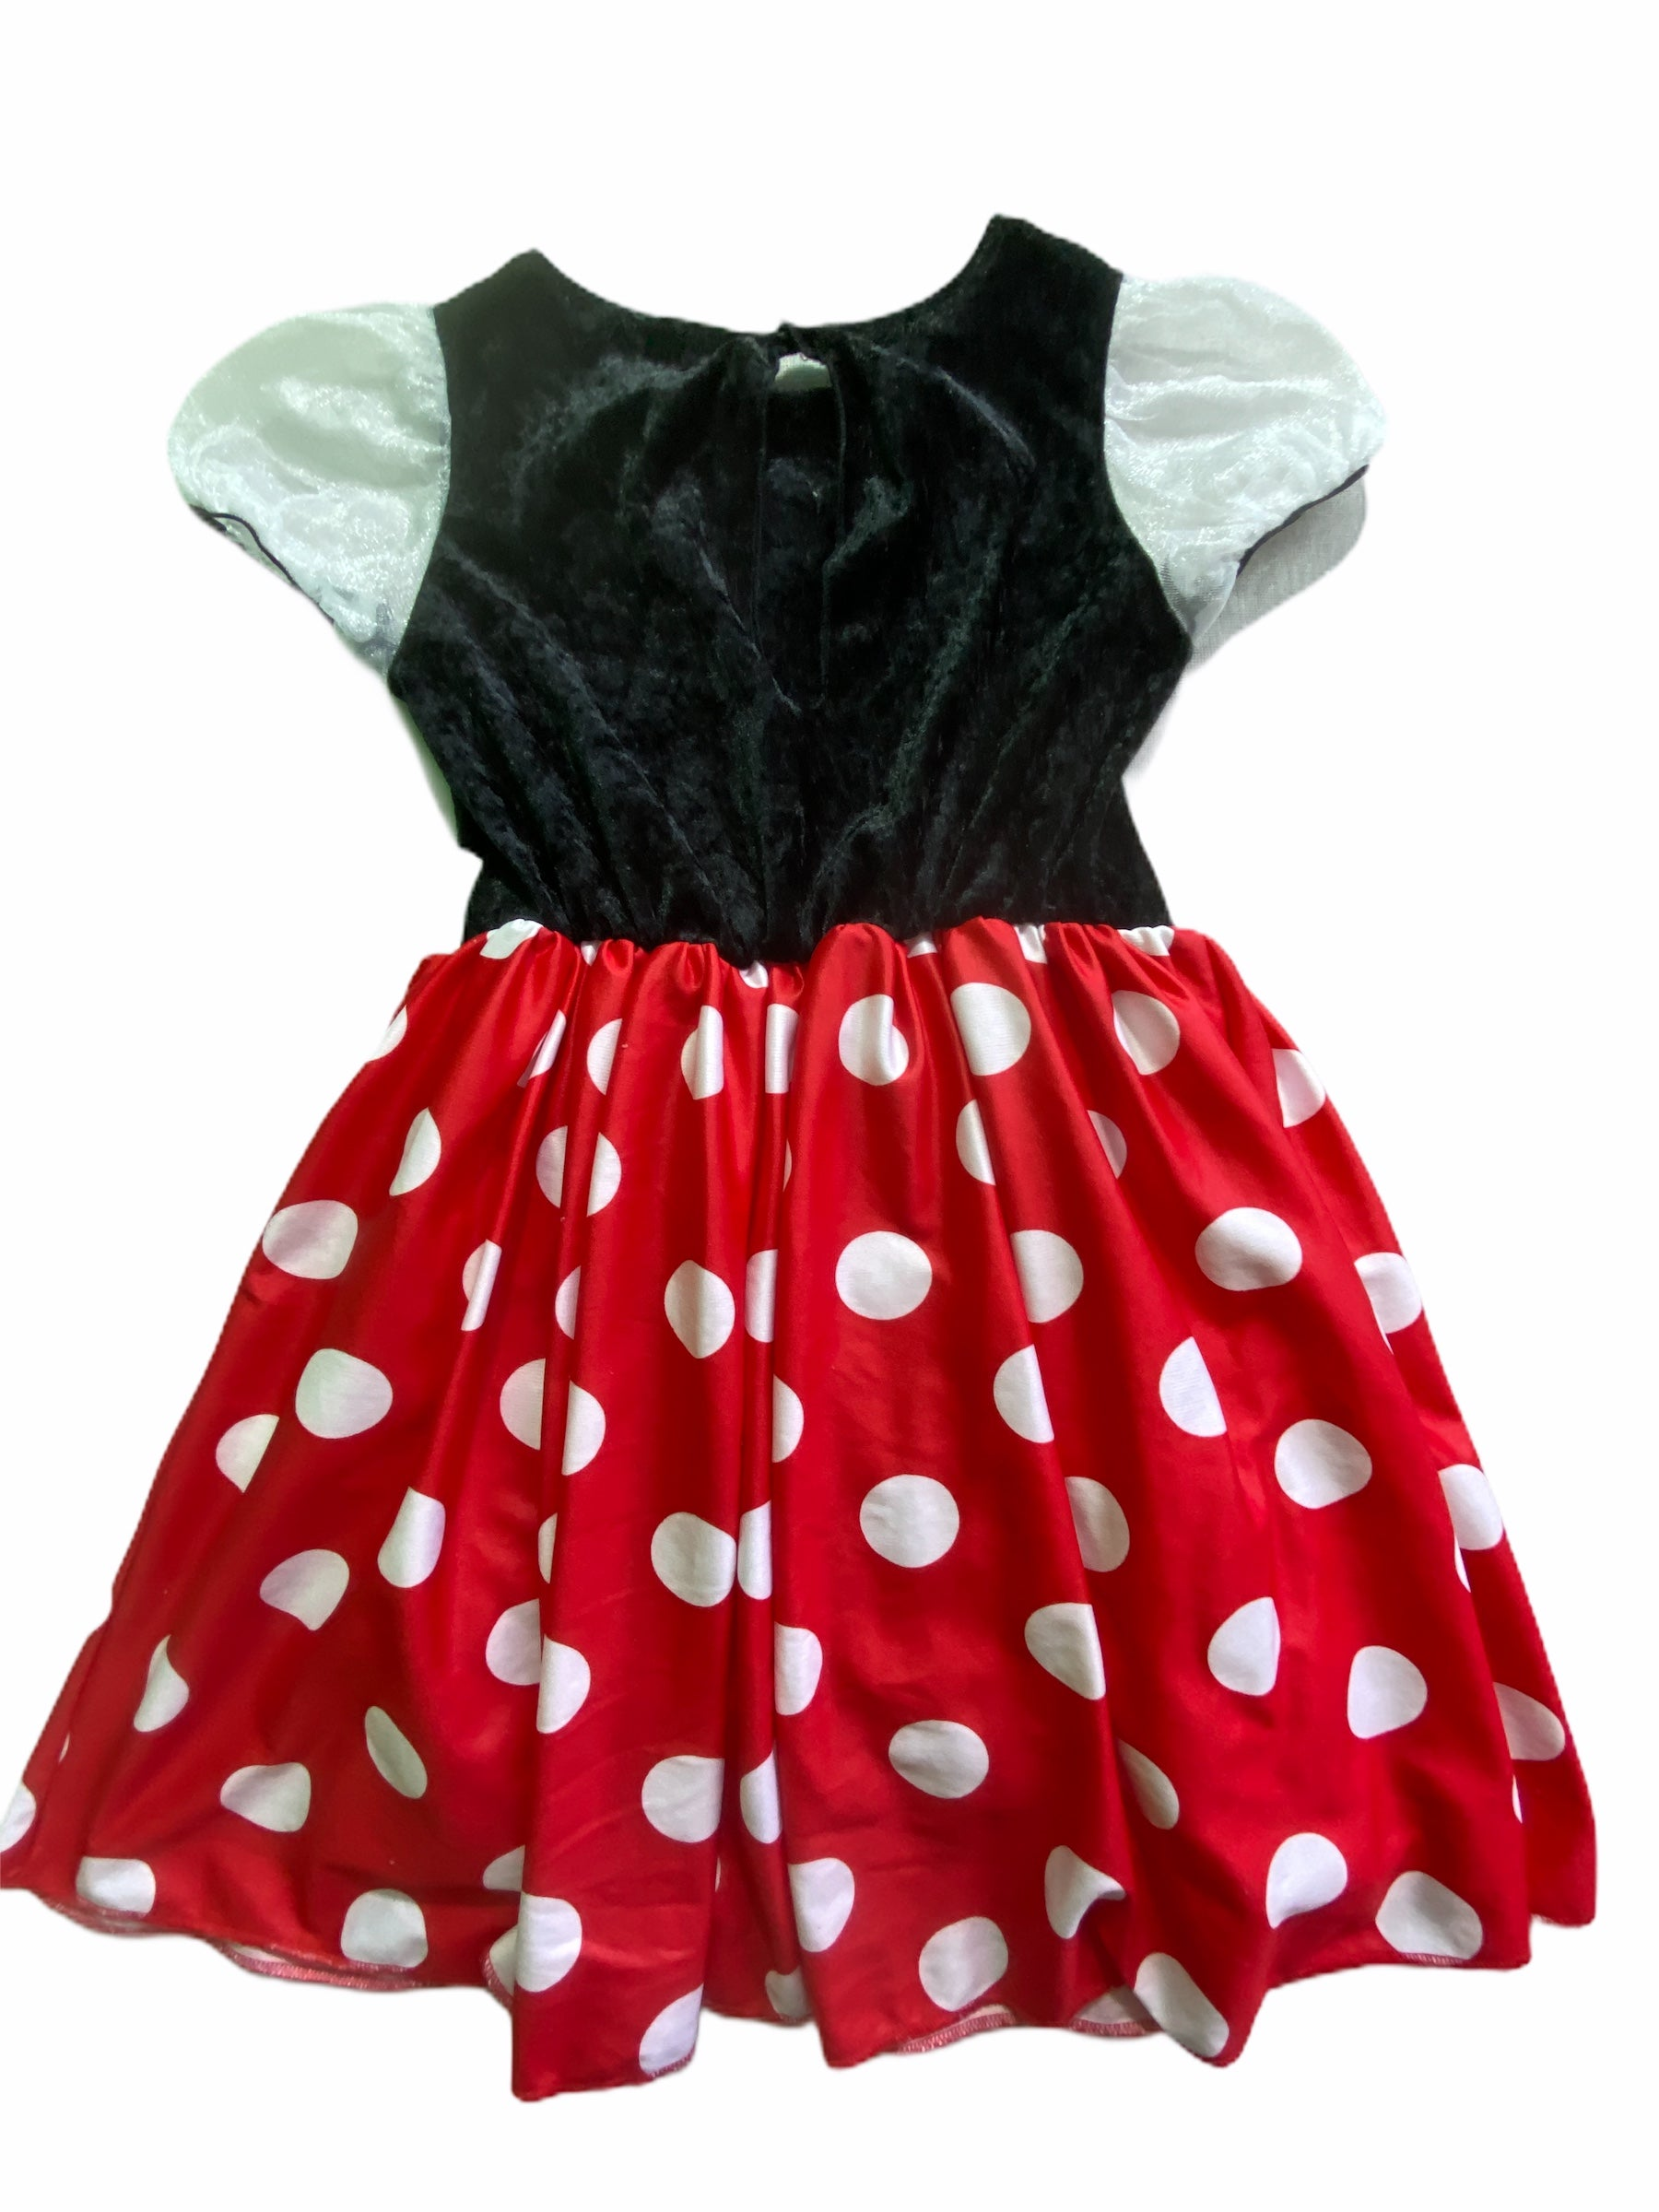 Disney Minnie Mouse Costume (7/8 Girls)